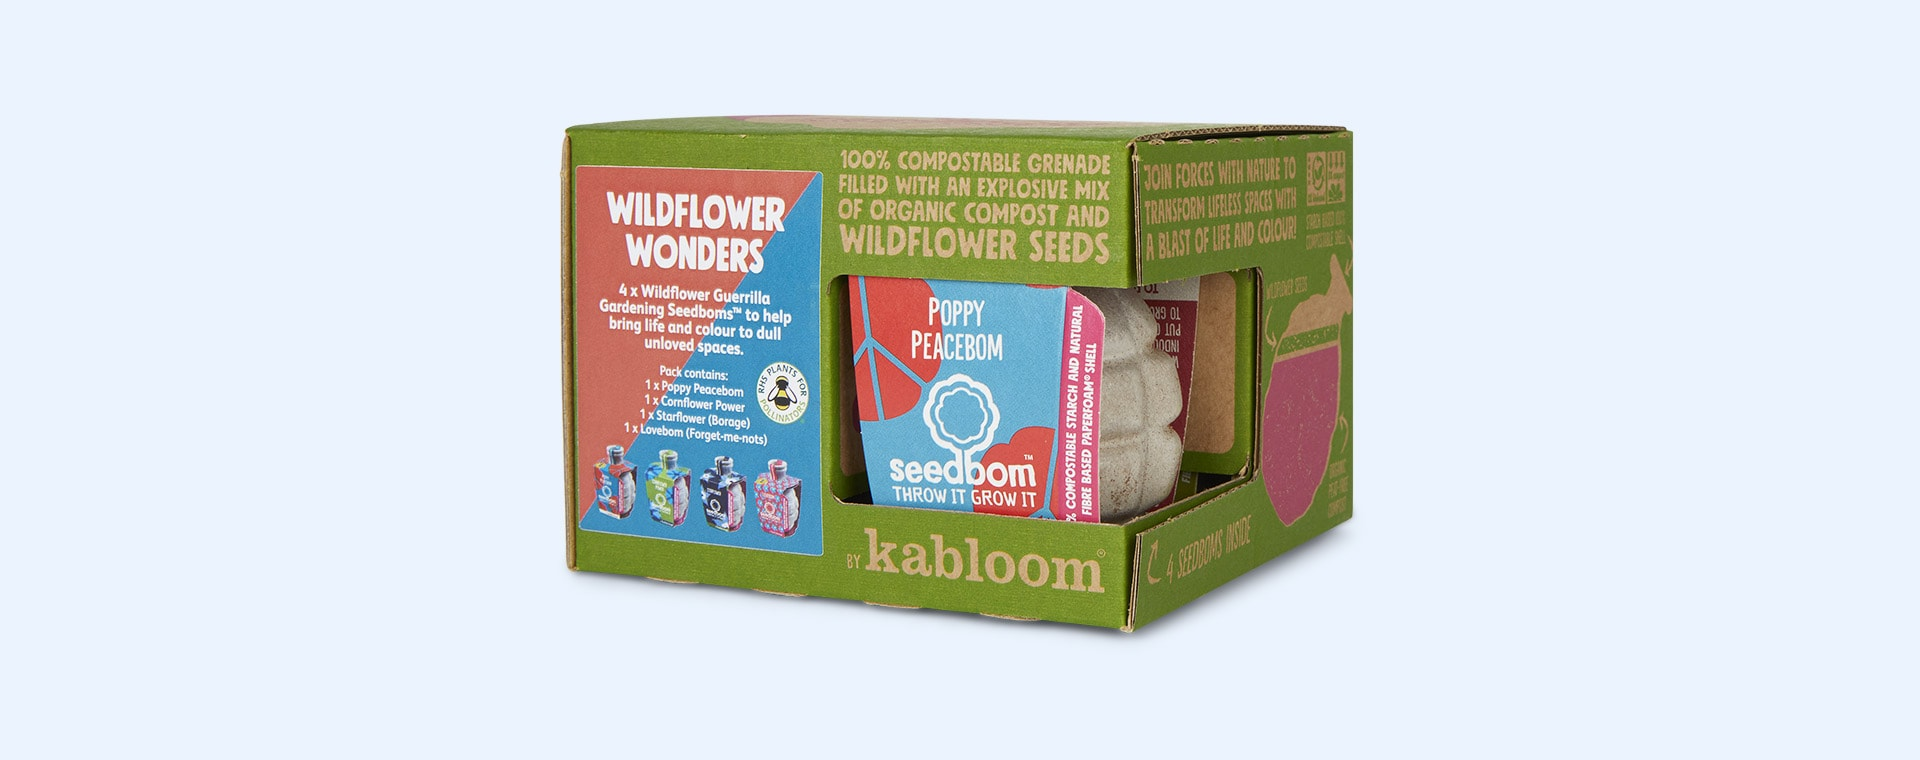 Wildflower Wonders Seedbom Seedbom Gift Box